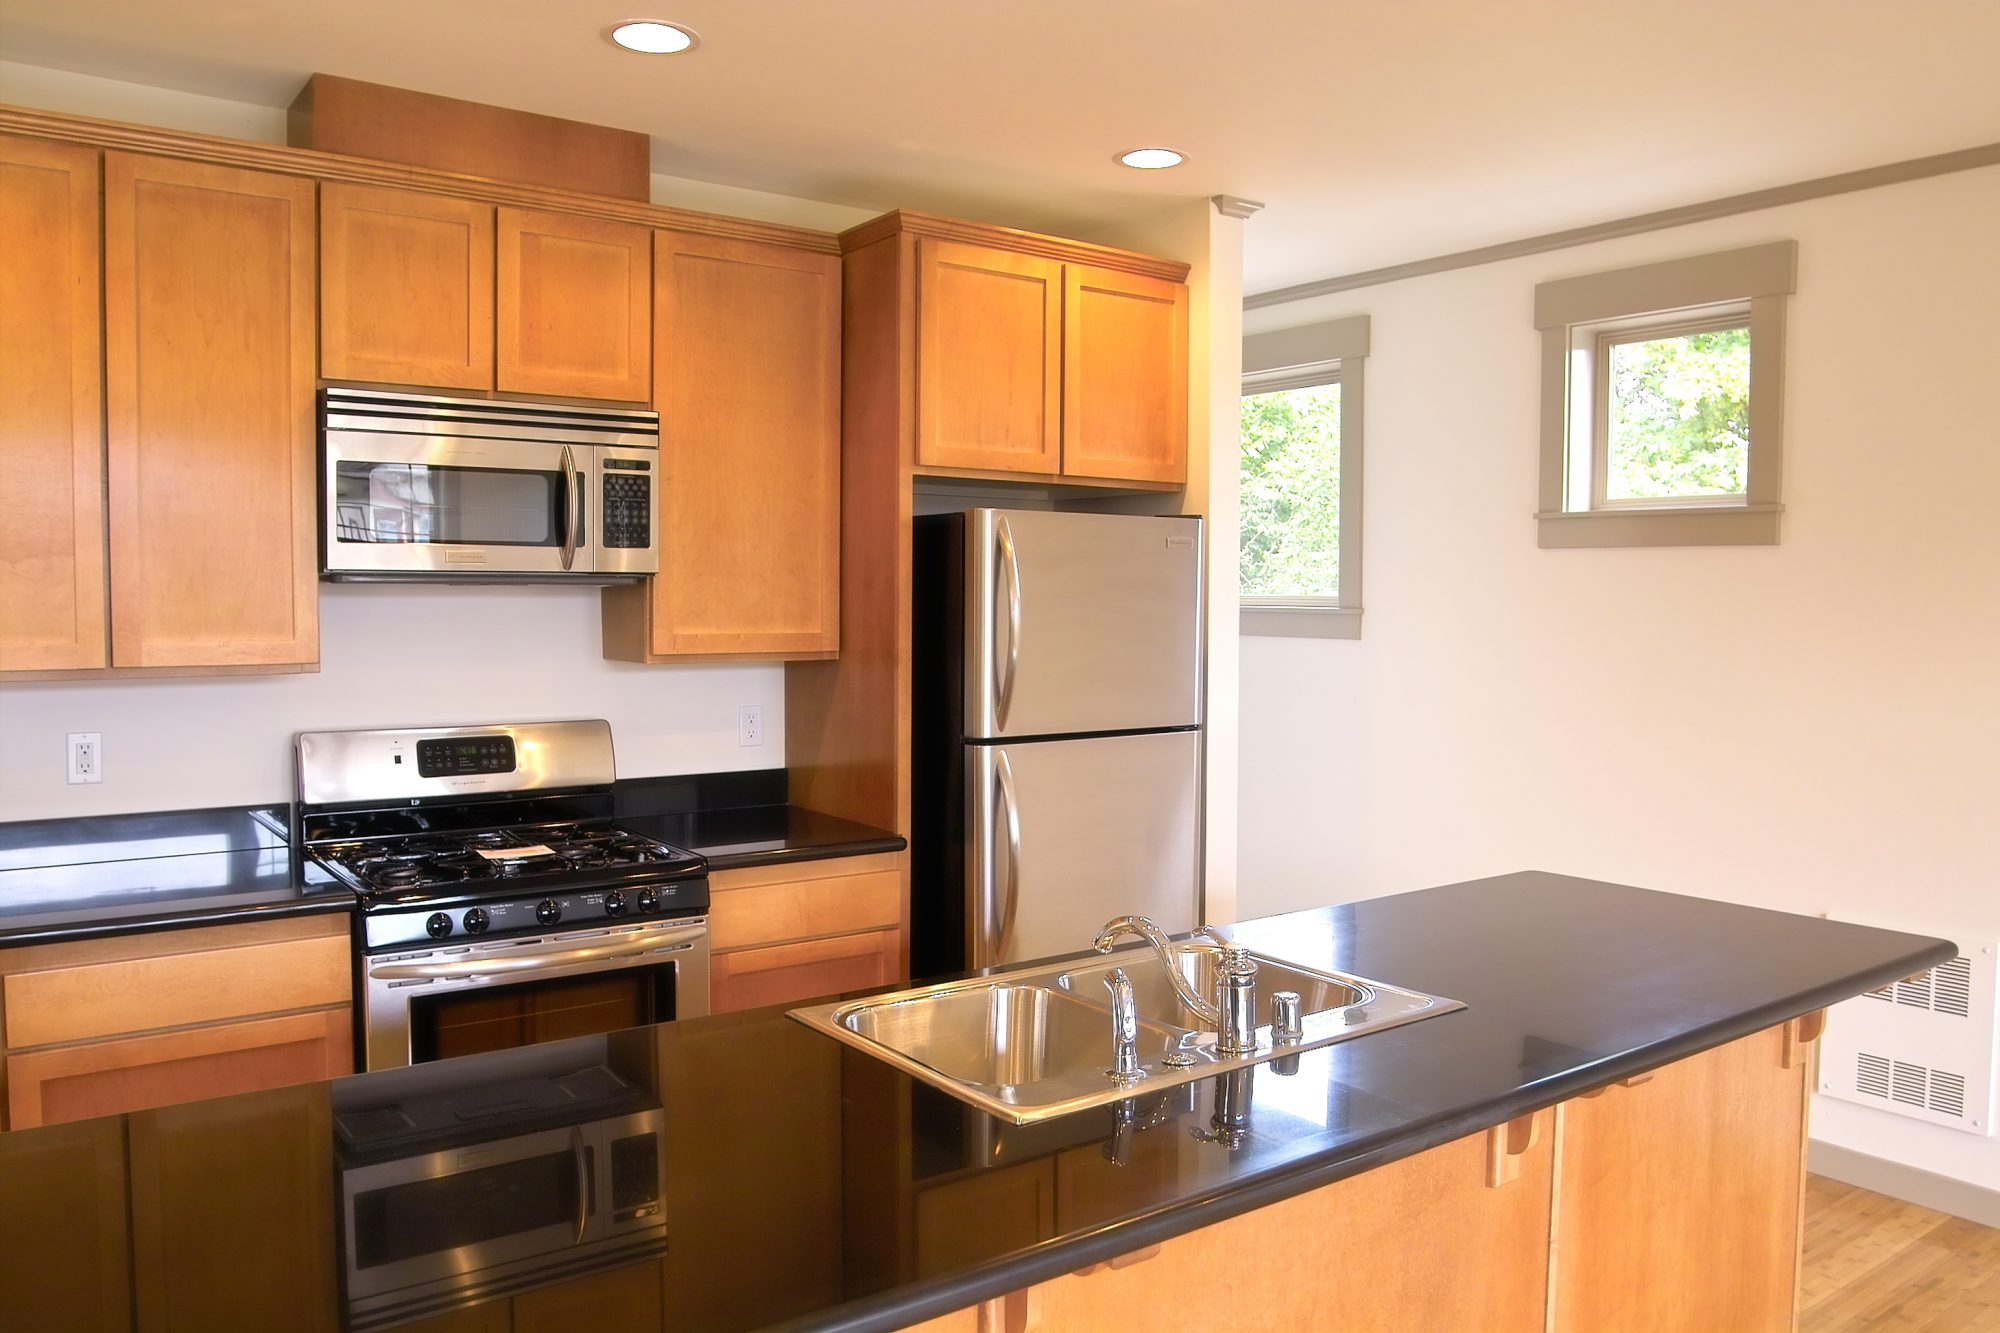 This $20 Lighting Trick Will Make a Huge Difference in Your Rental Kitchen